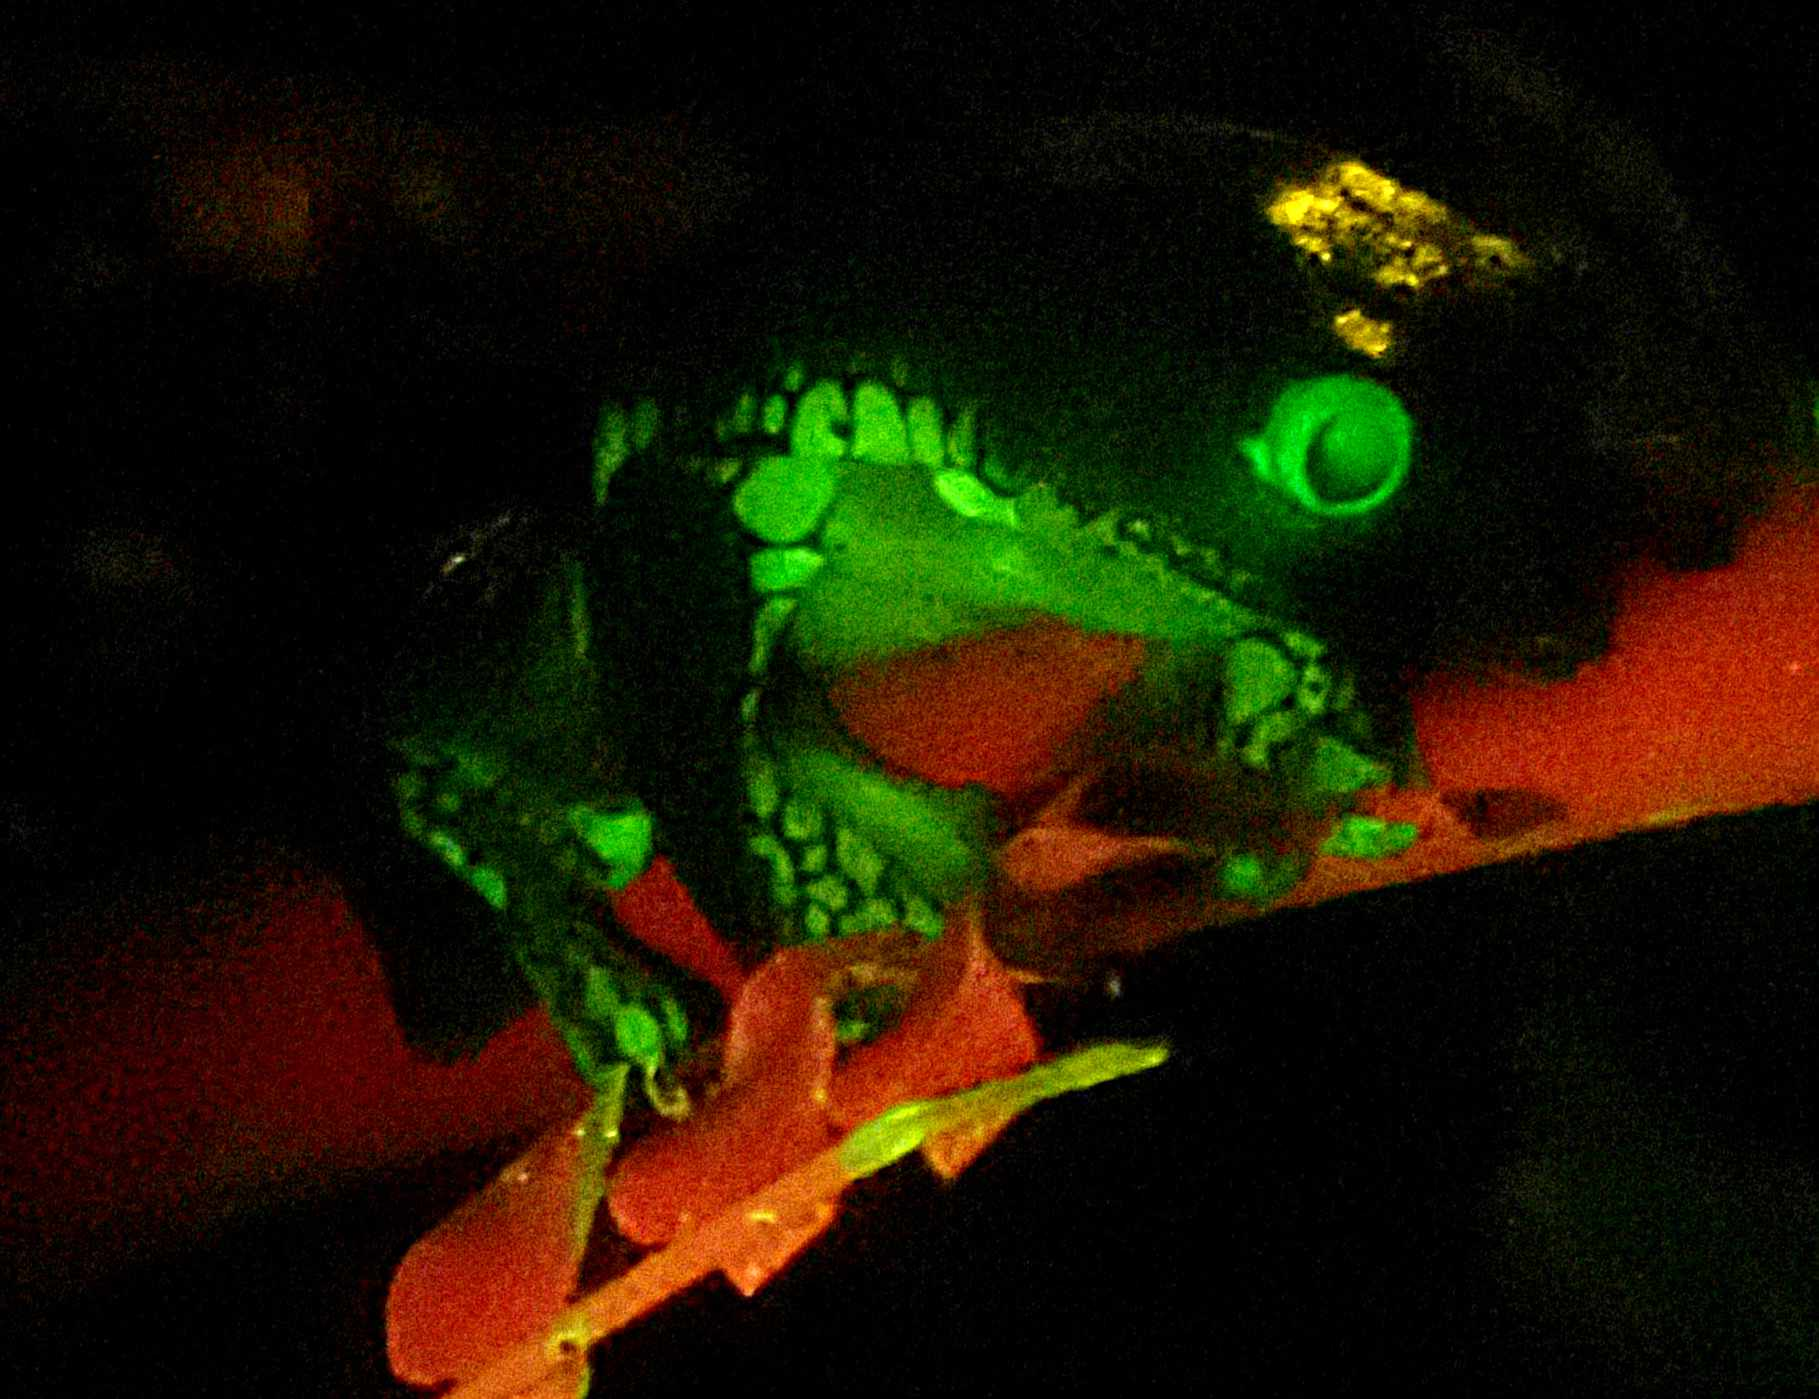 We may be able to use biofluoresence to survey for amphibians in dense vegetation.